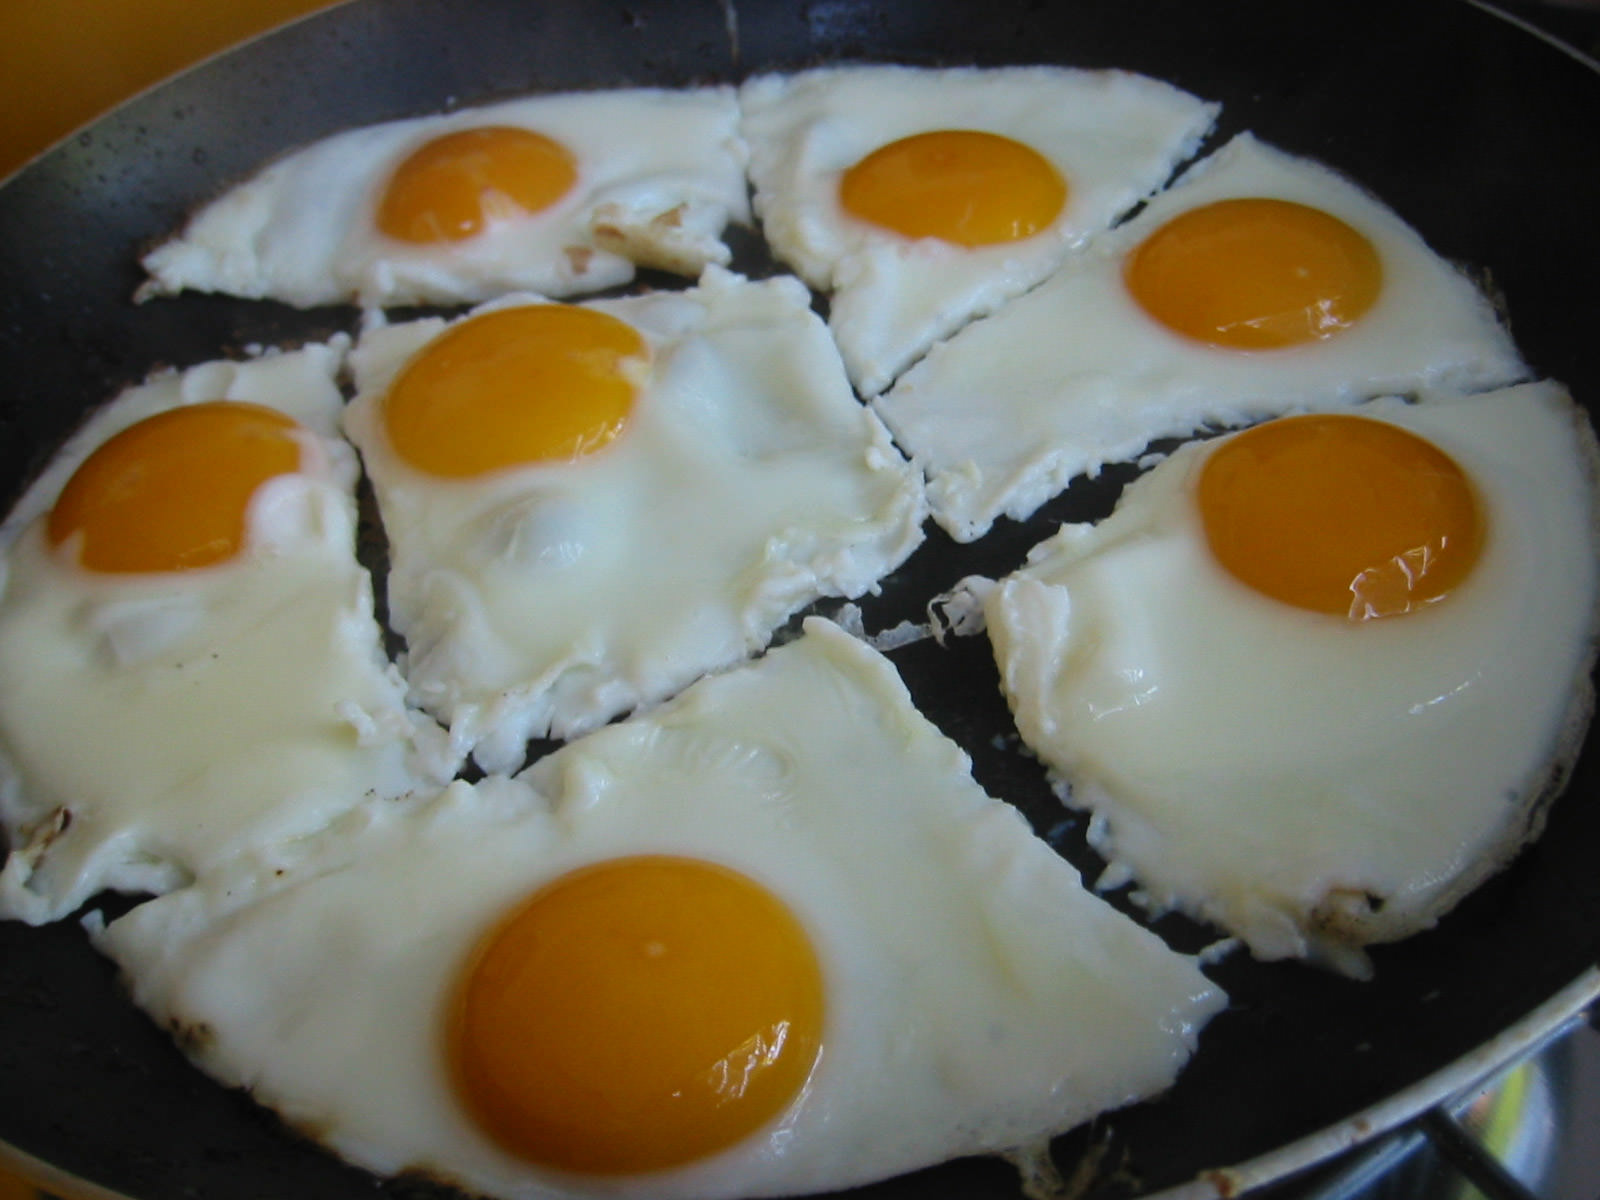 Eggs for everybody!